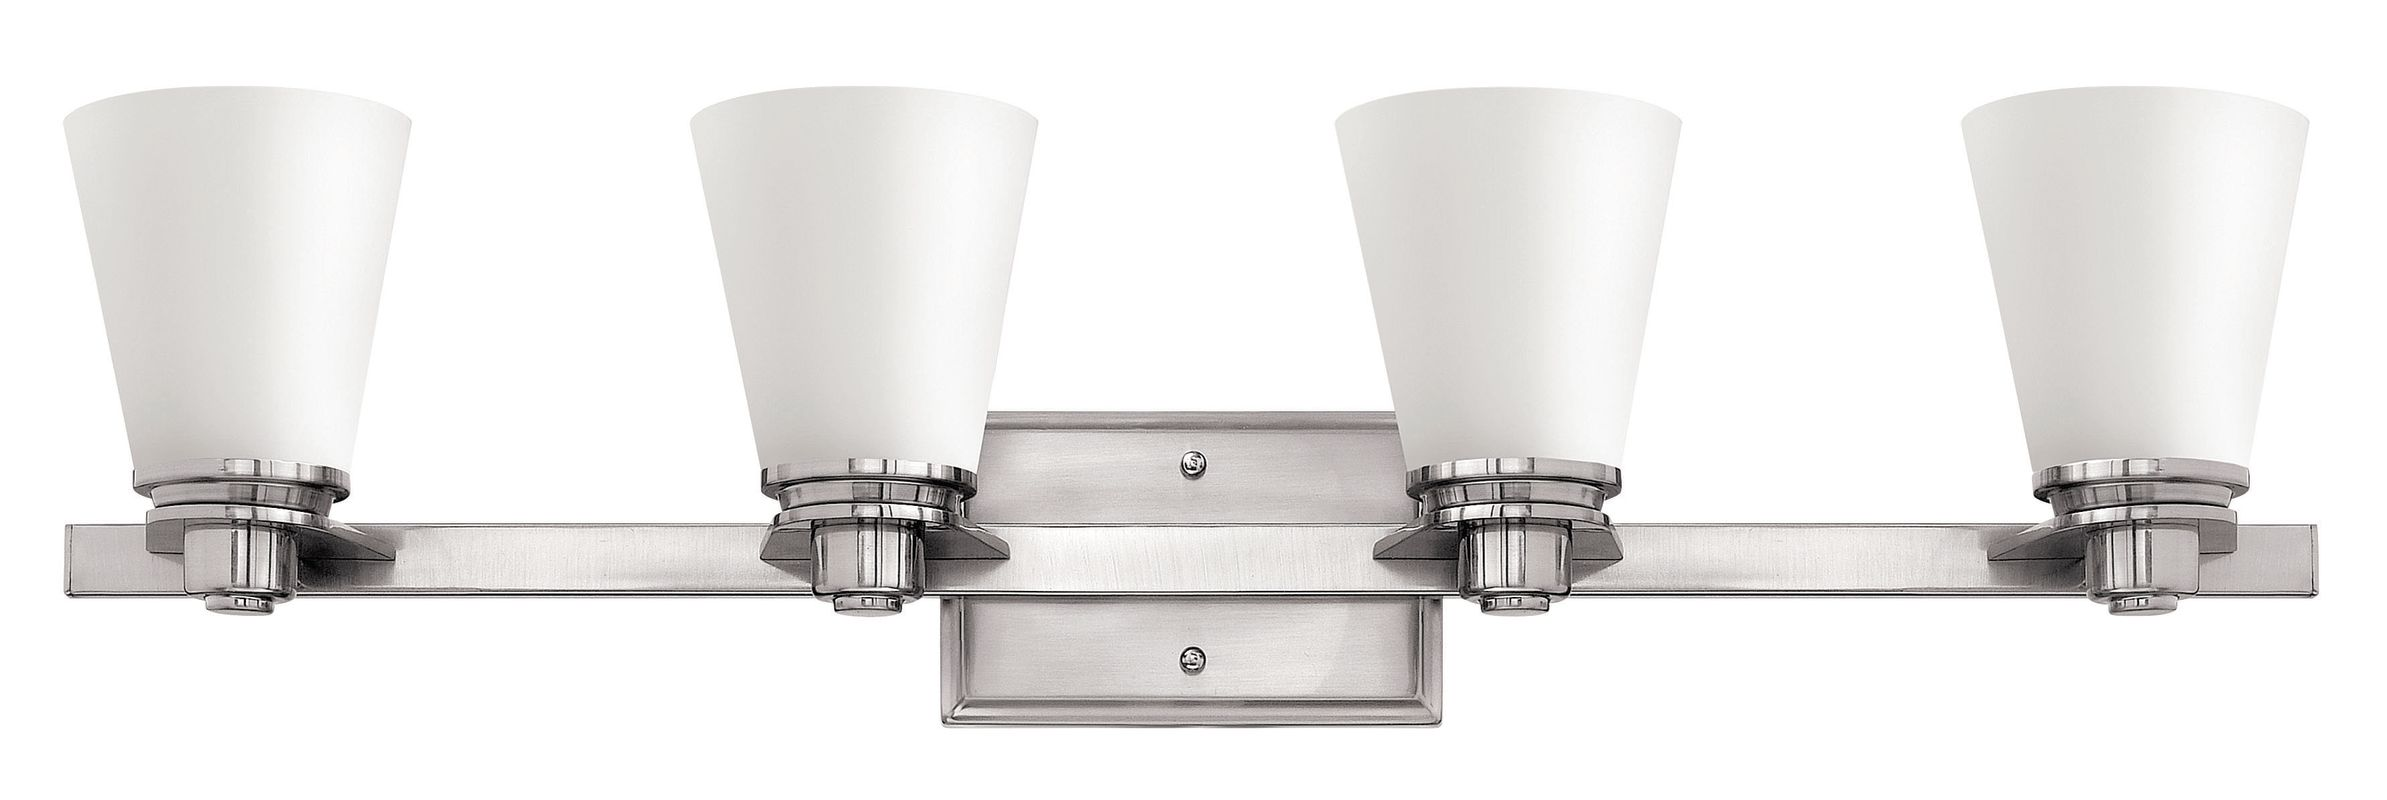 Hinkley Lighting 5554-GU24 4 Light Title 24 Fluorescent Bathroom Sale $299.00 ITEM#: 2635562 MODEL# :5554BN-GU24 UPC#: 640665555578 :